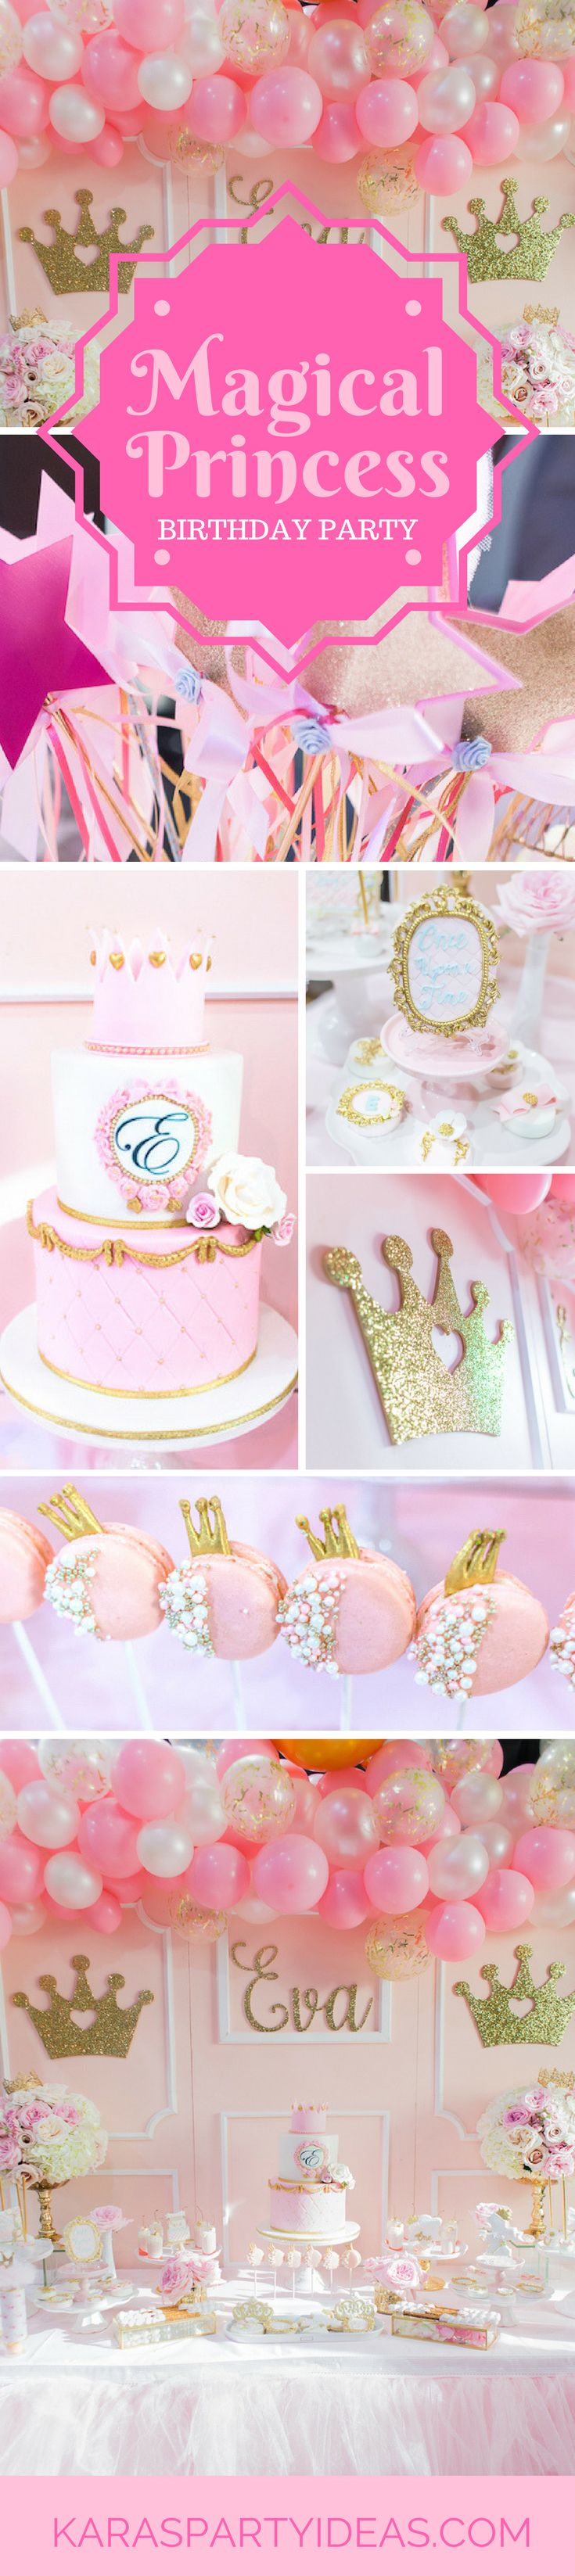 801 best Princess Party Ideas Karas Party Ideas images on